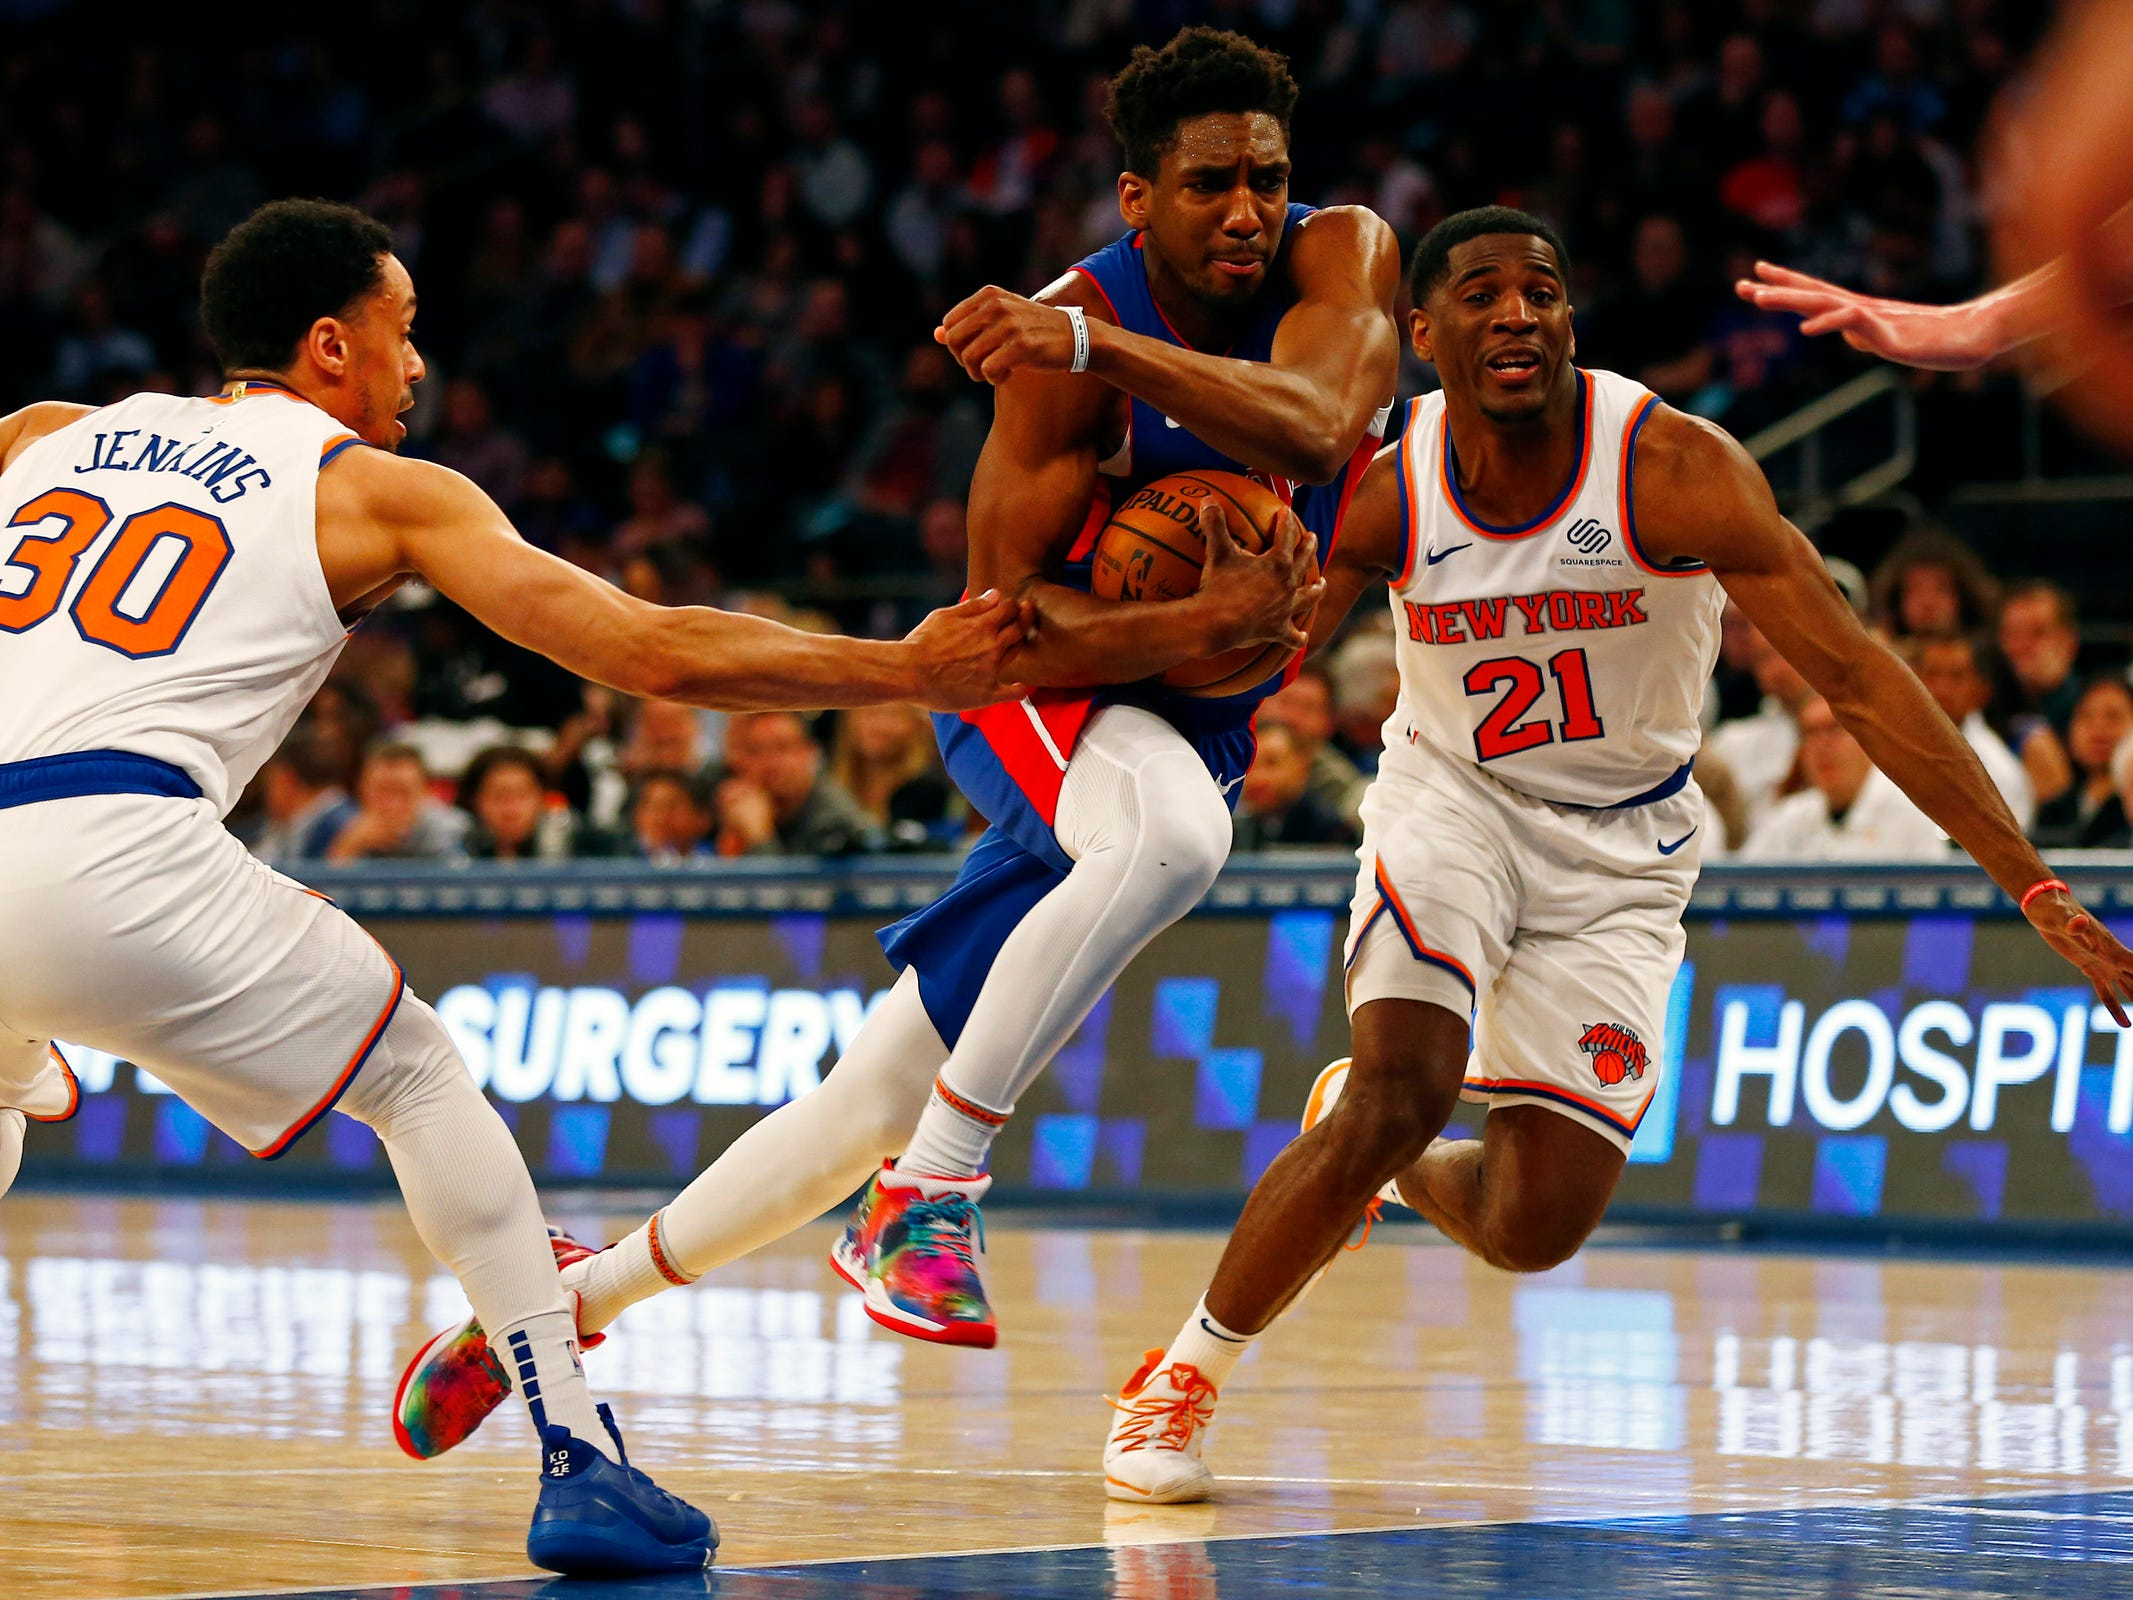 Detroit Pistons guard Langston Galloway (9) drives to the basket past New York Knicks guard John Jenkins (30) during the first half at Madison Square Garden on Wednesday, April 10, 2019.